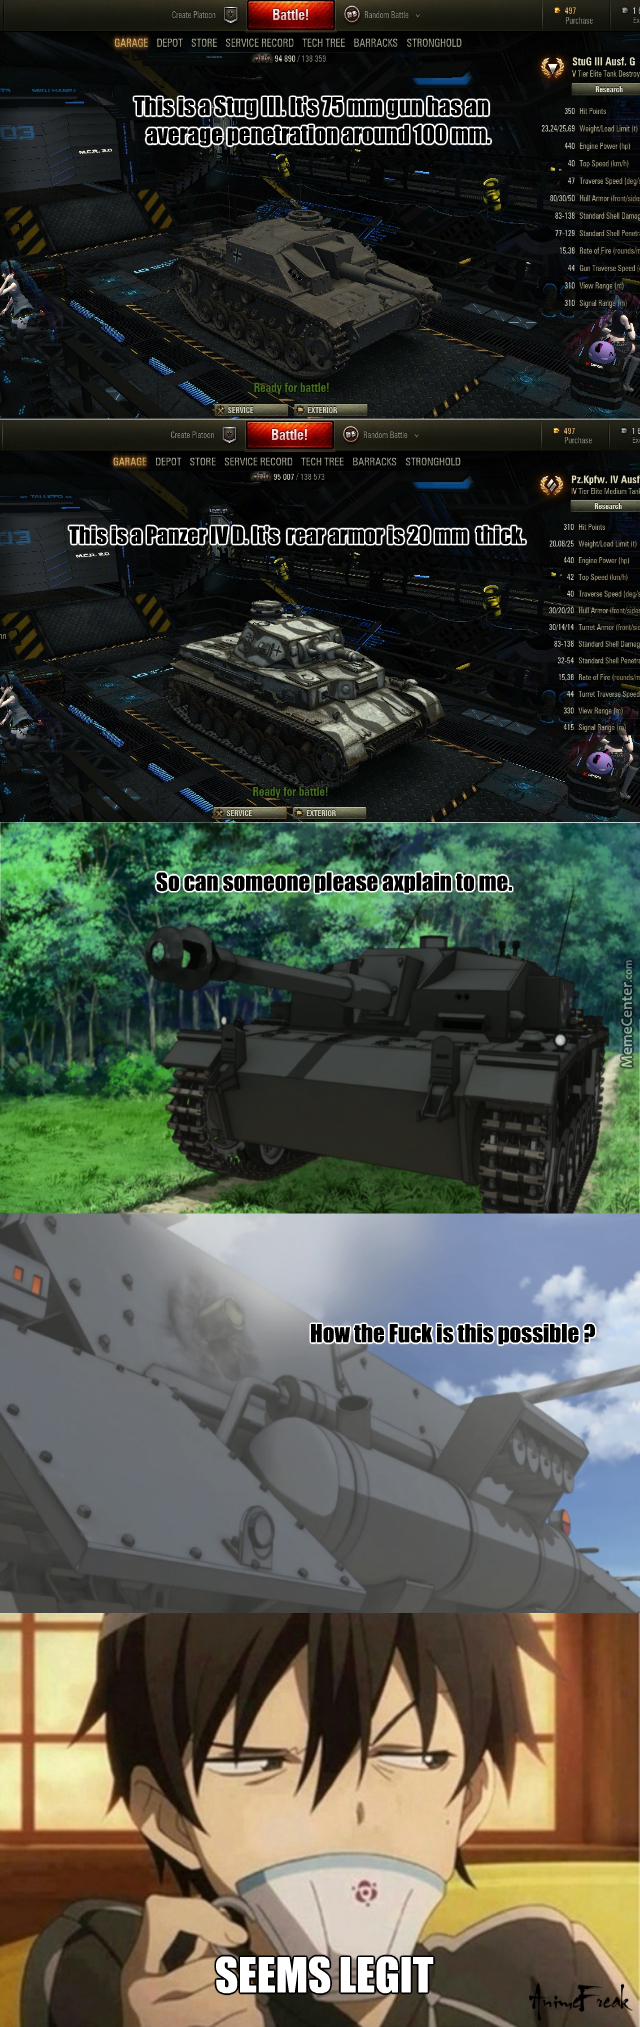 go home anime you amp 039 re drunk anime girls und panzer sword art online_o_4589999 go home anime you're drunk (anime girls und panzer sword art